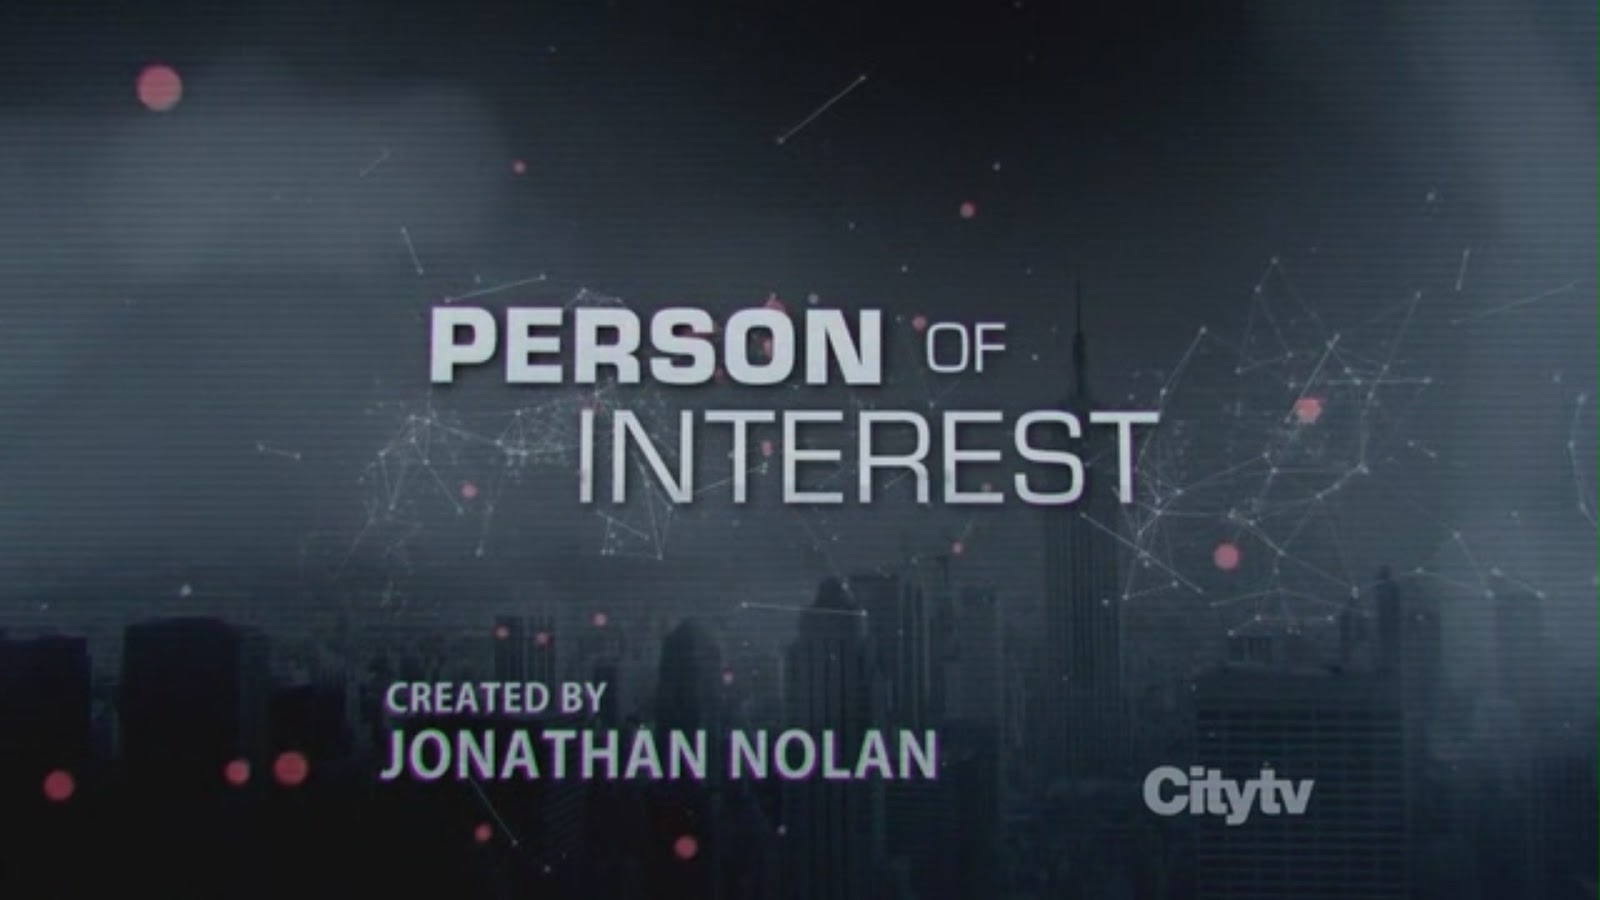 Person Of Interest - Episode 1 23 - Firewall (Season Finale